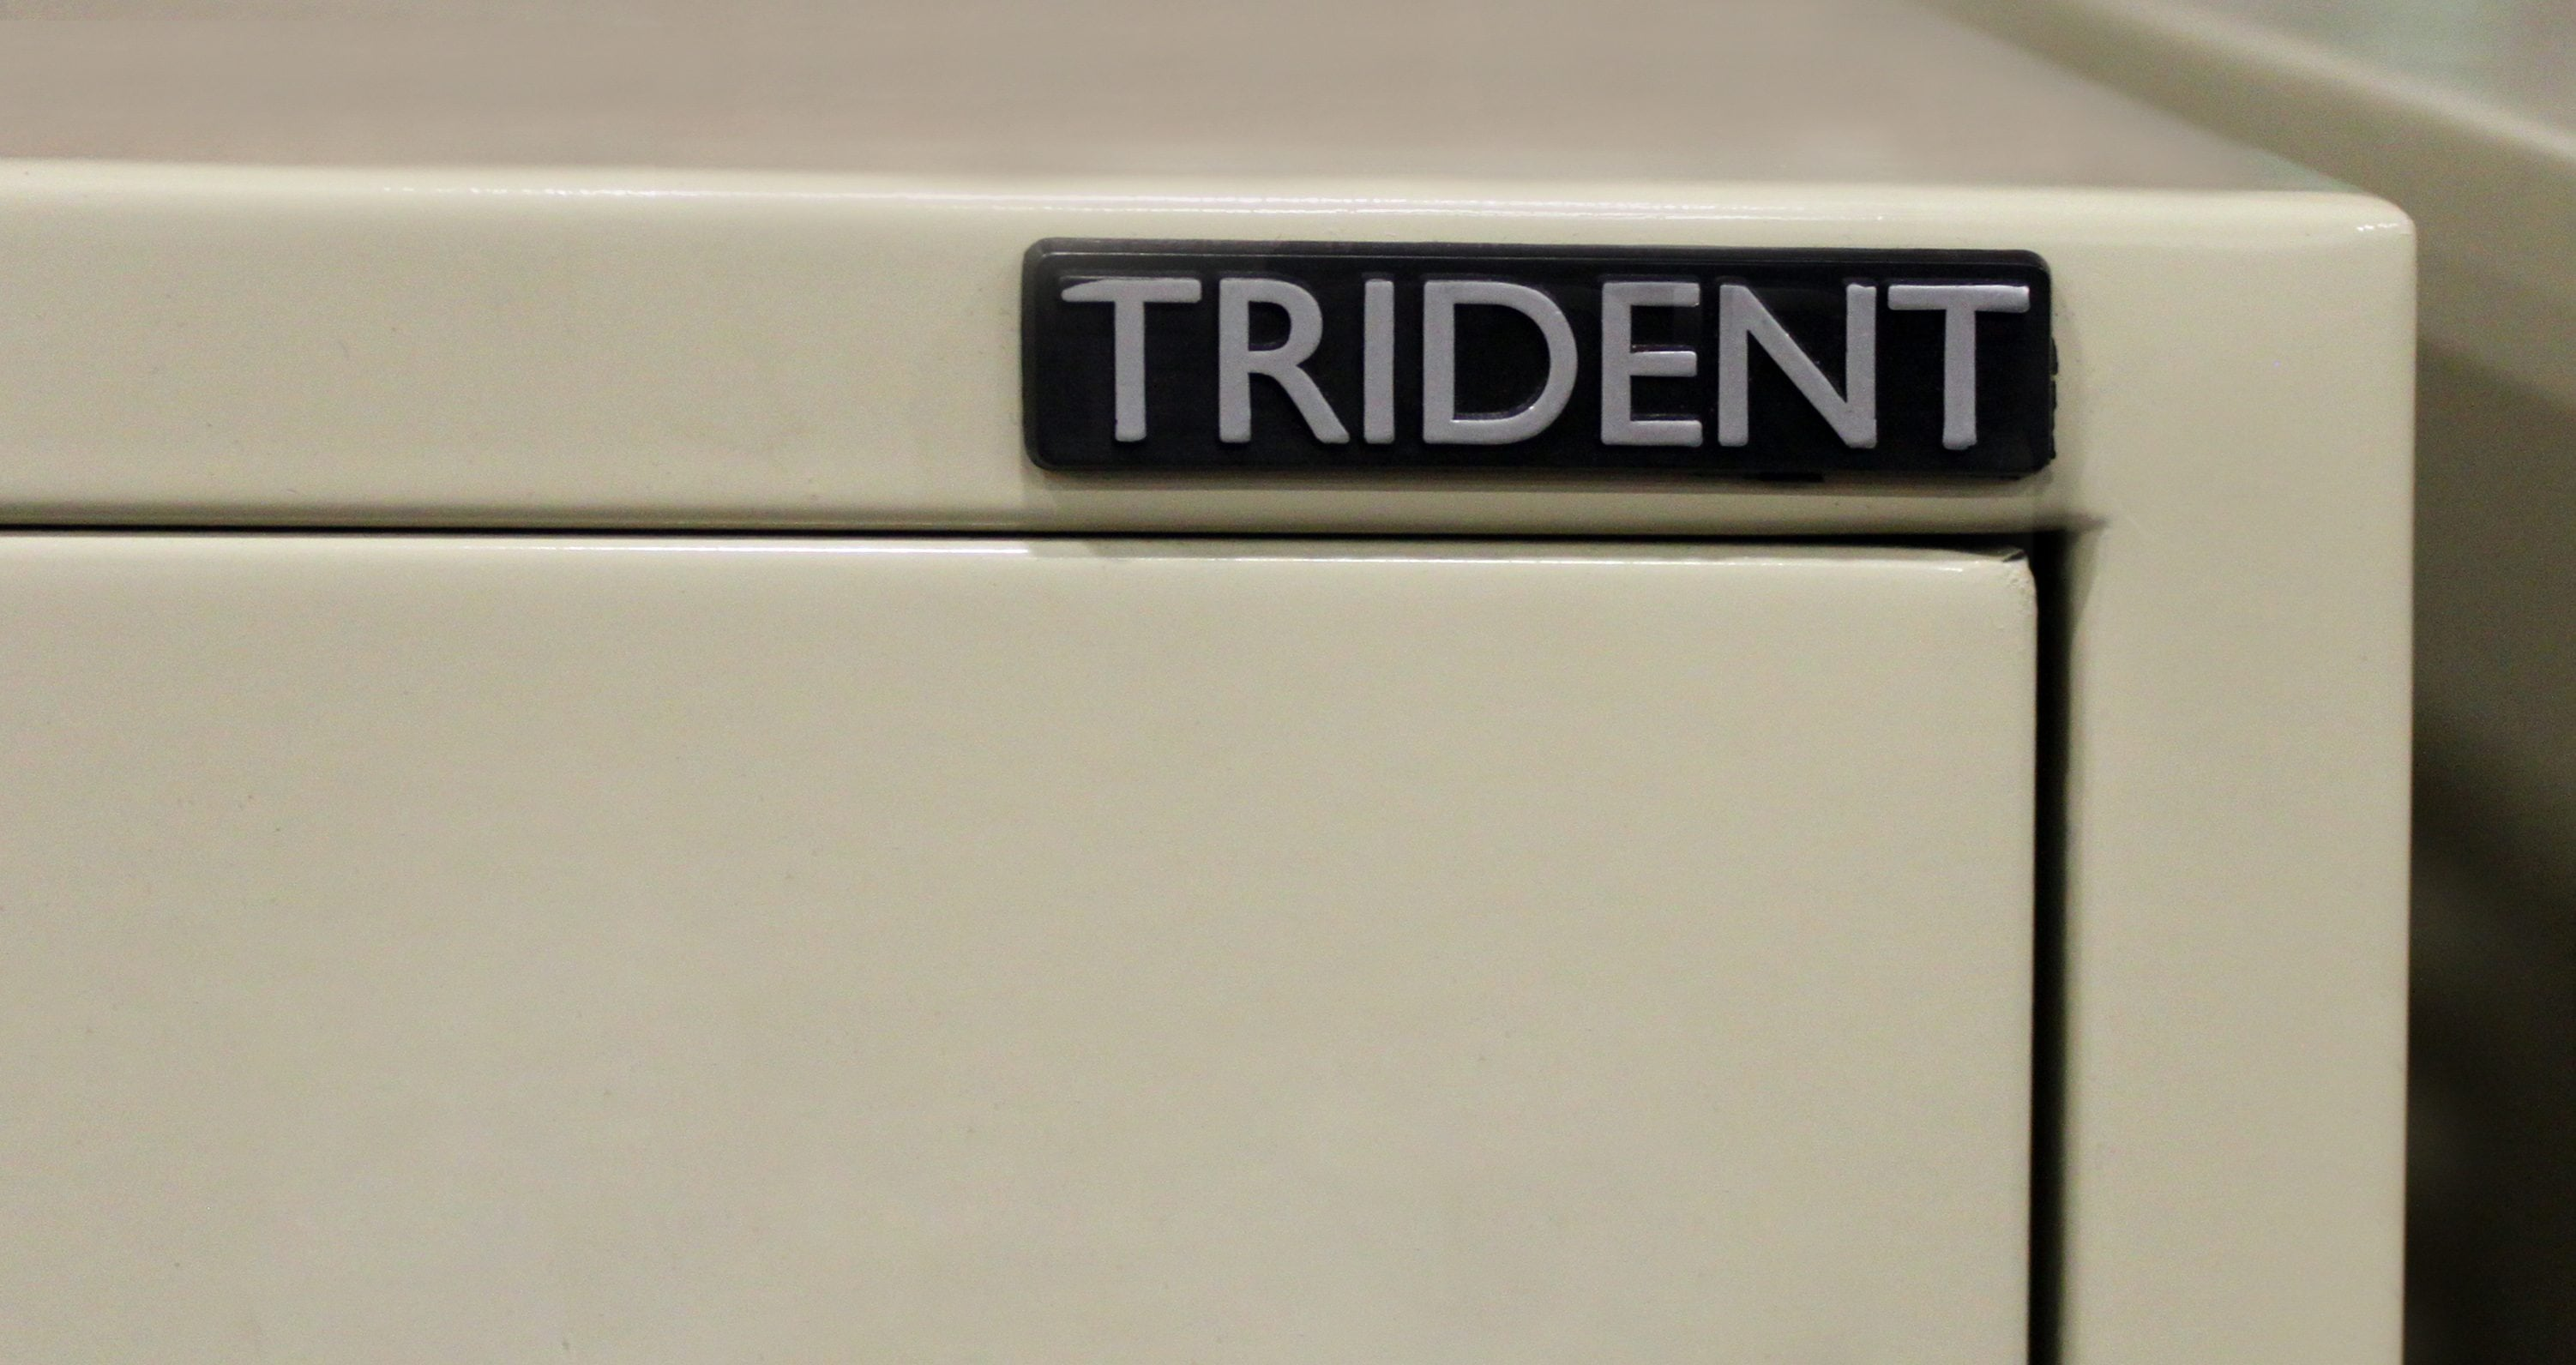 trident shaped letter schwab 5000 trident used putty letter sized file 25318 | IMG 0659